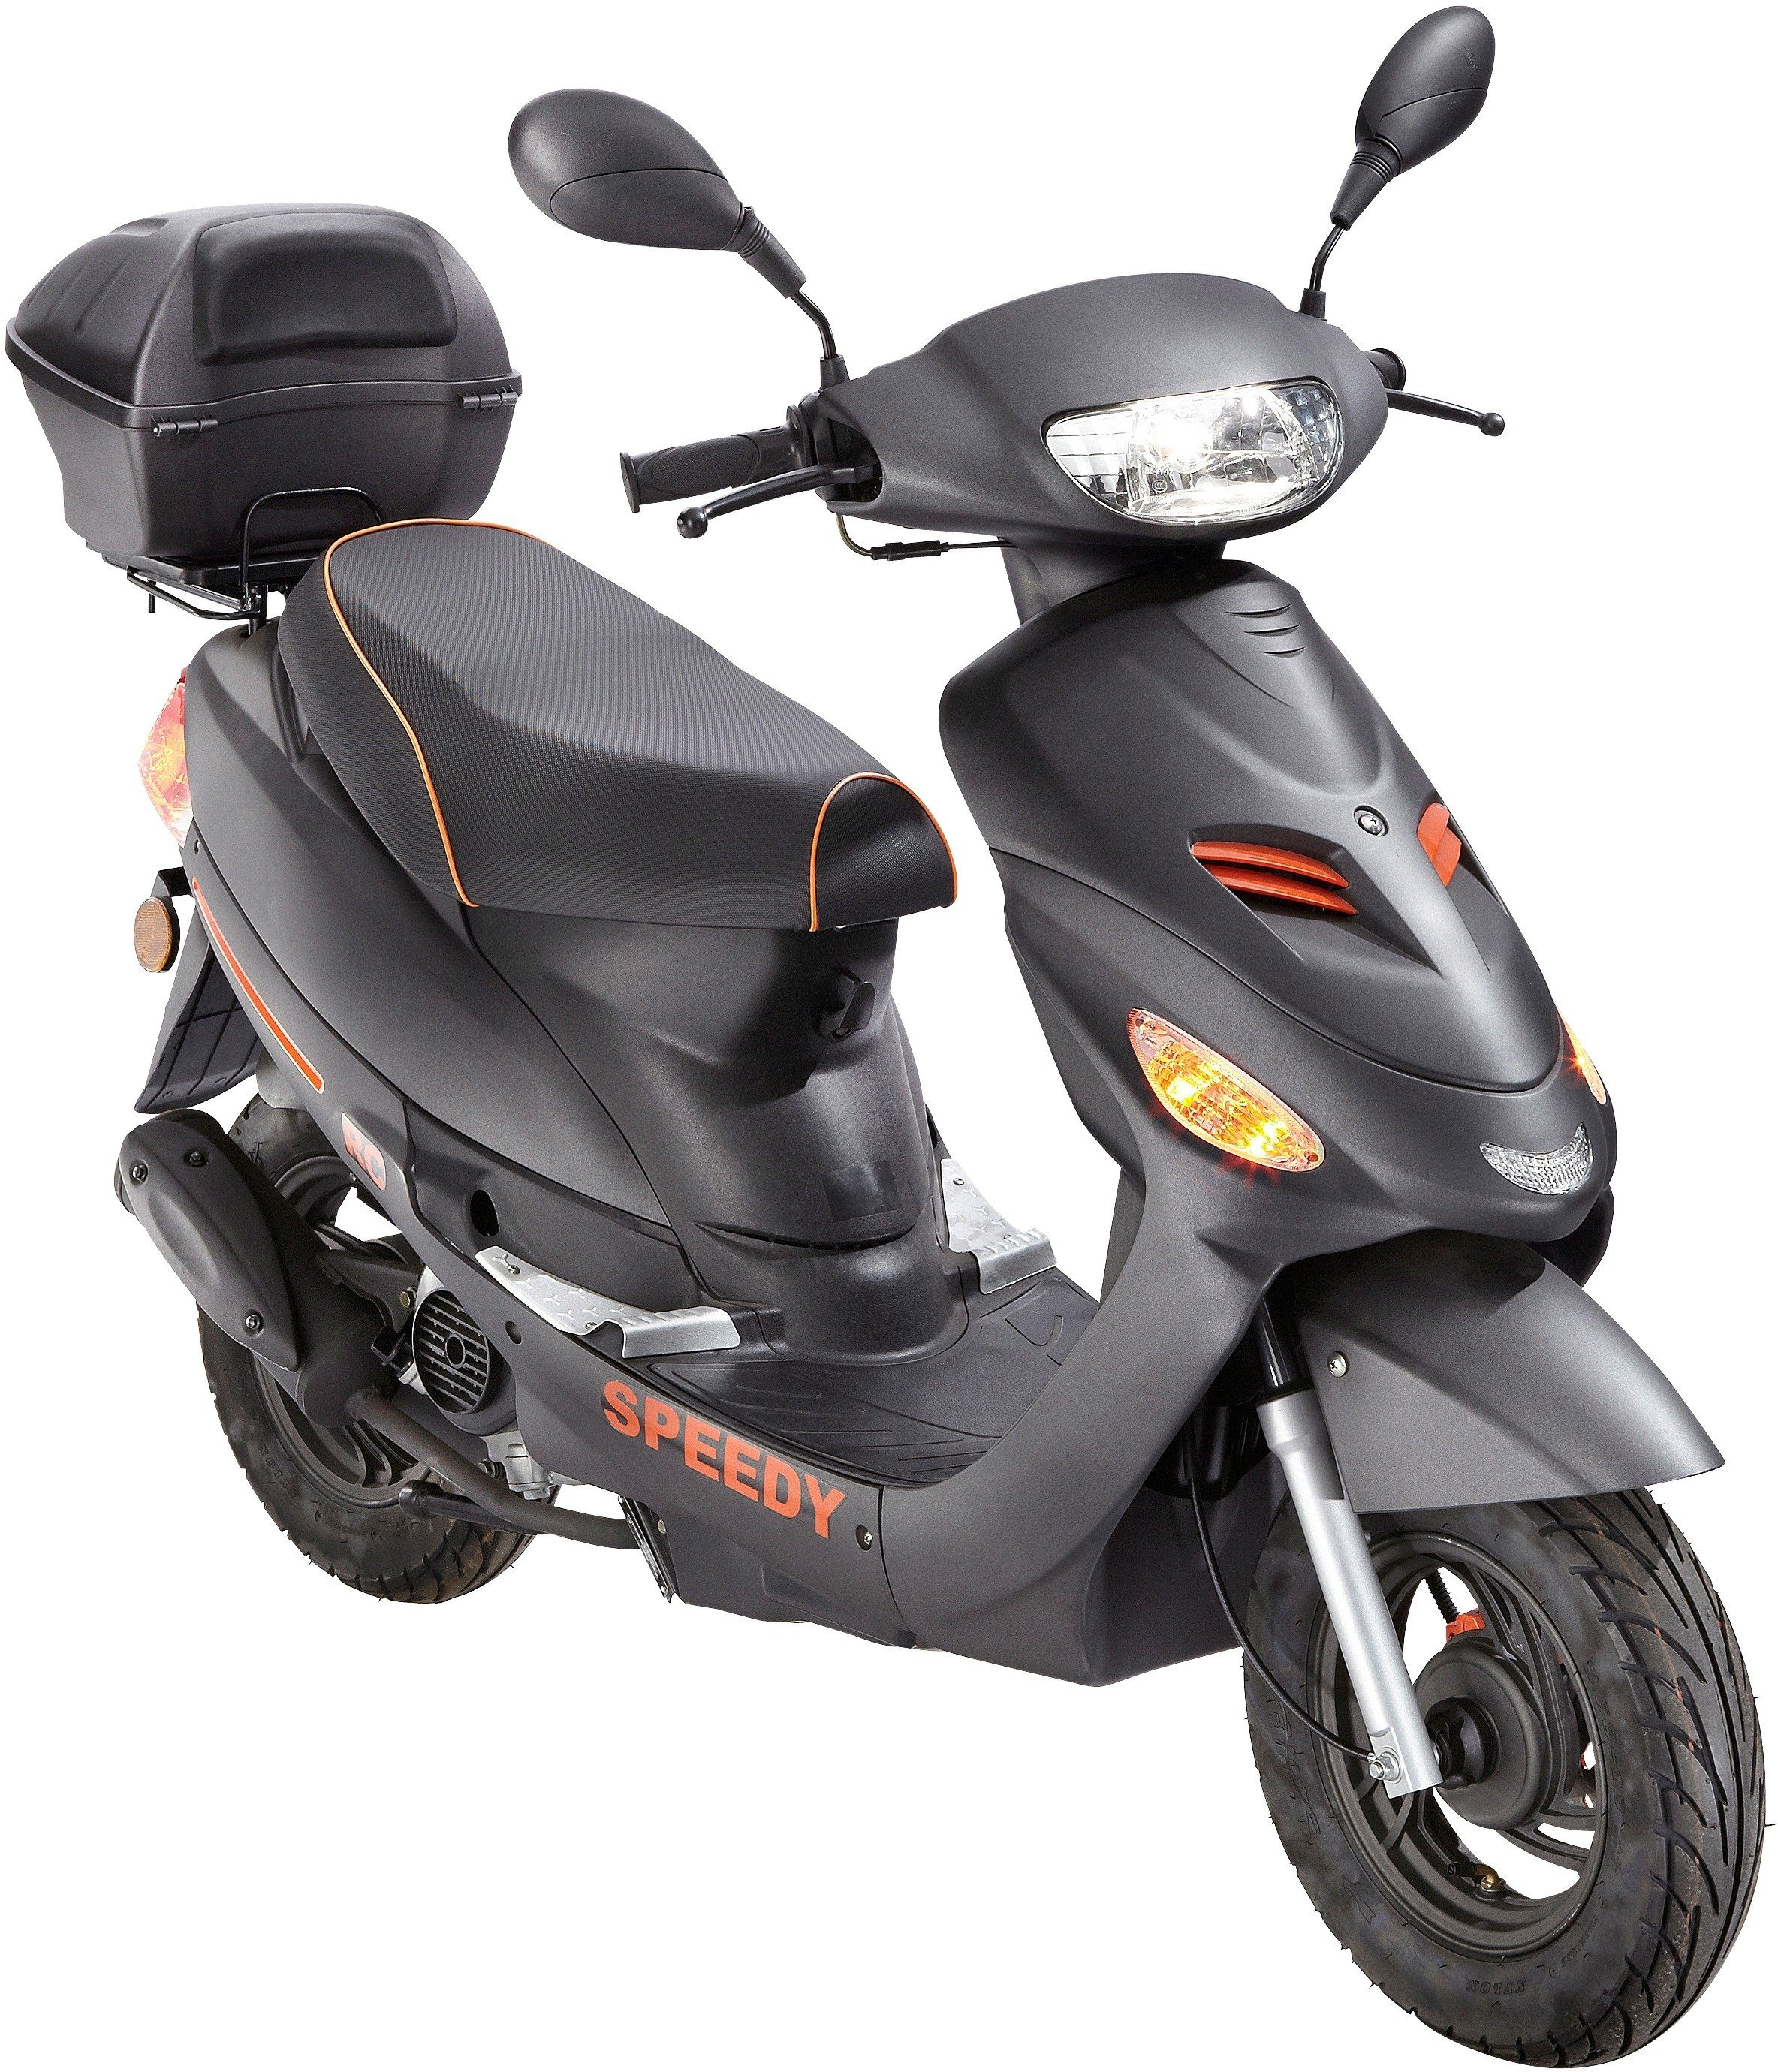 Flex Tech Mofa »Speedy 50 ccm, 25 km/h«